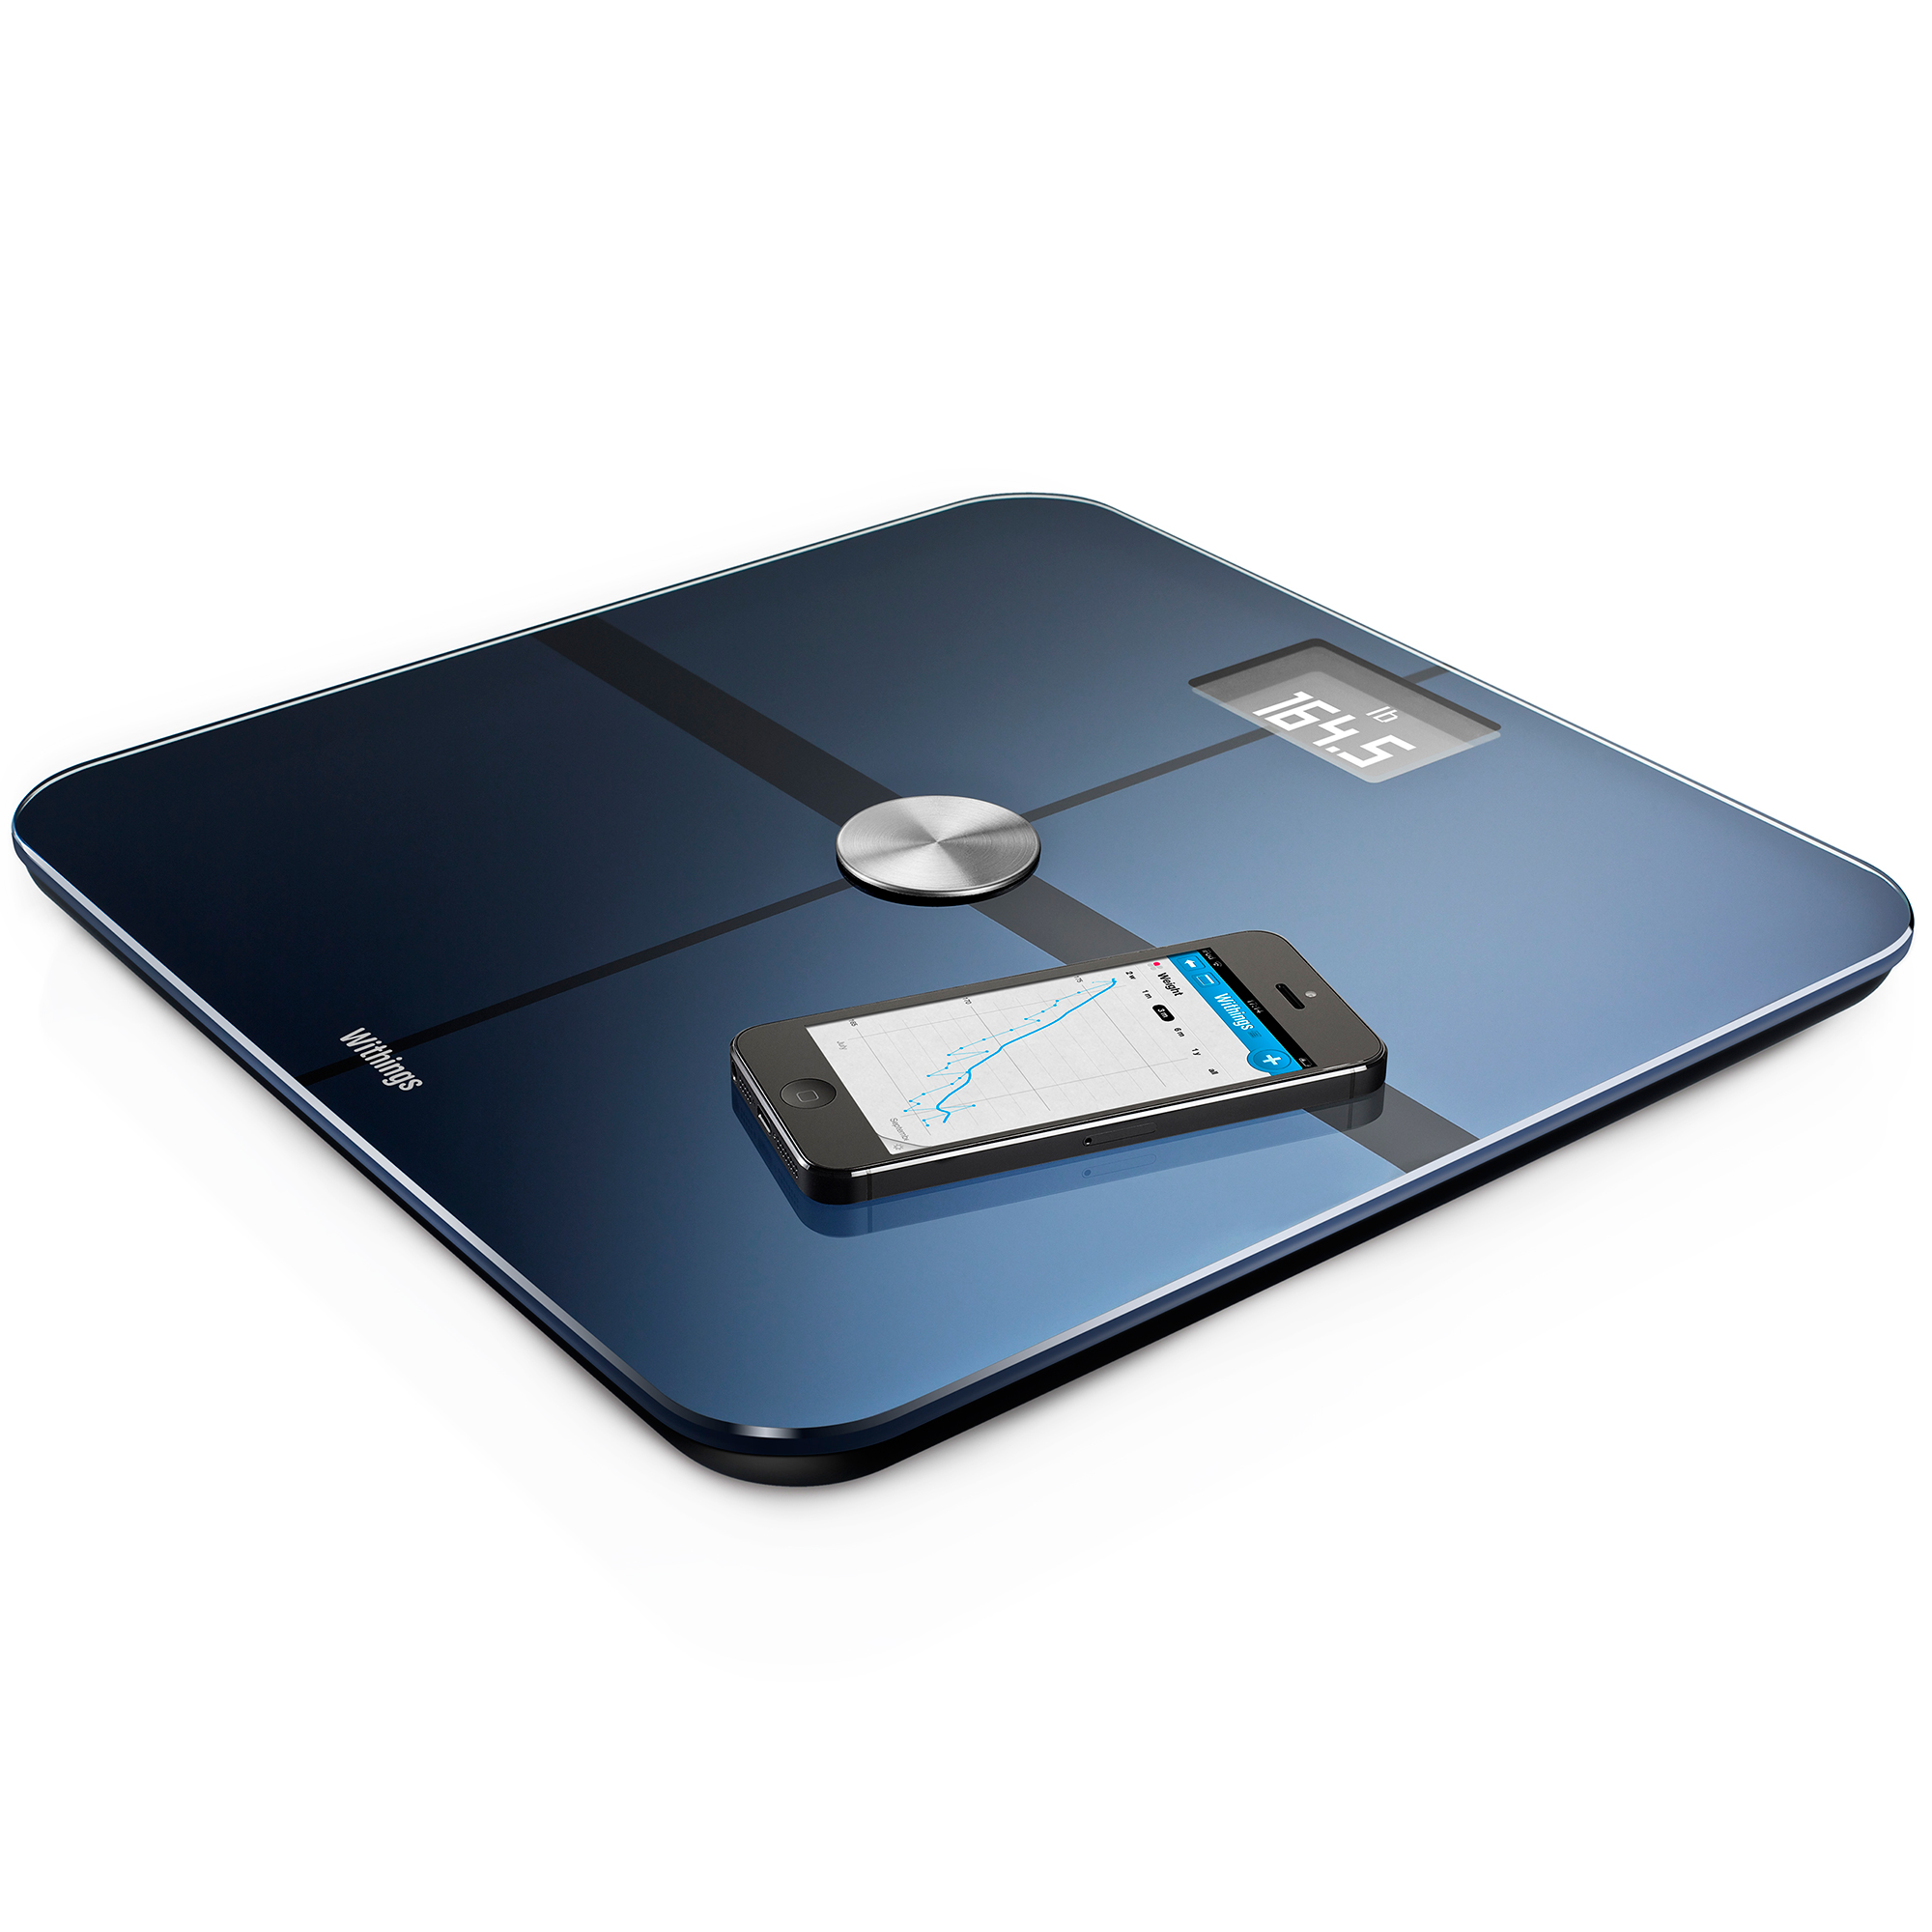 Withings Smart Body Analyzer WS-50 Scale